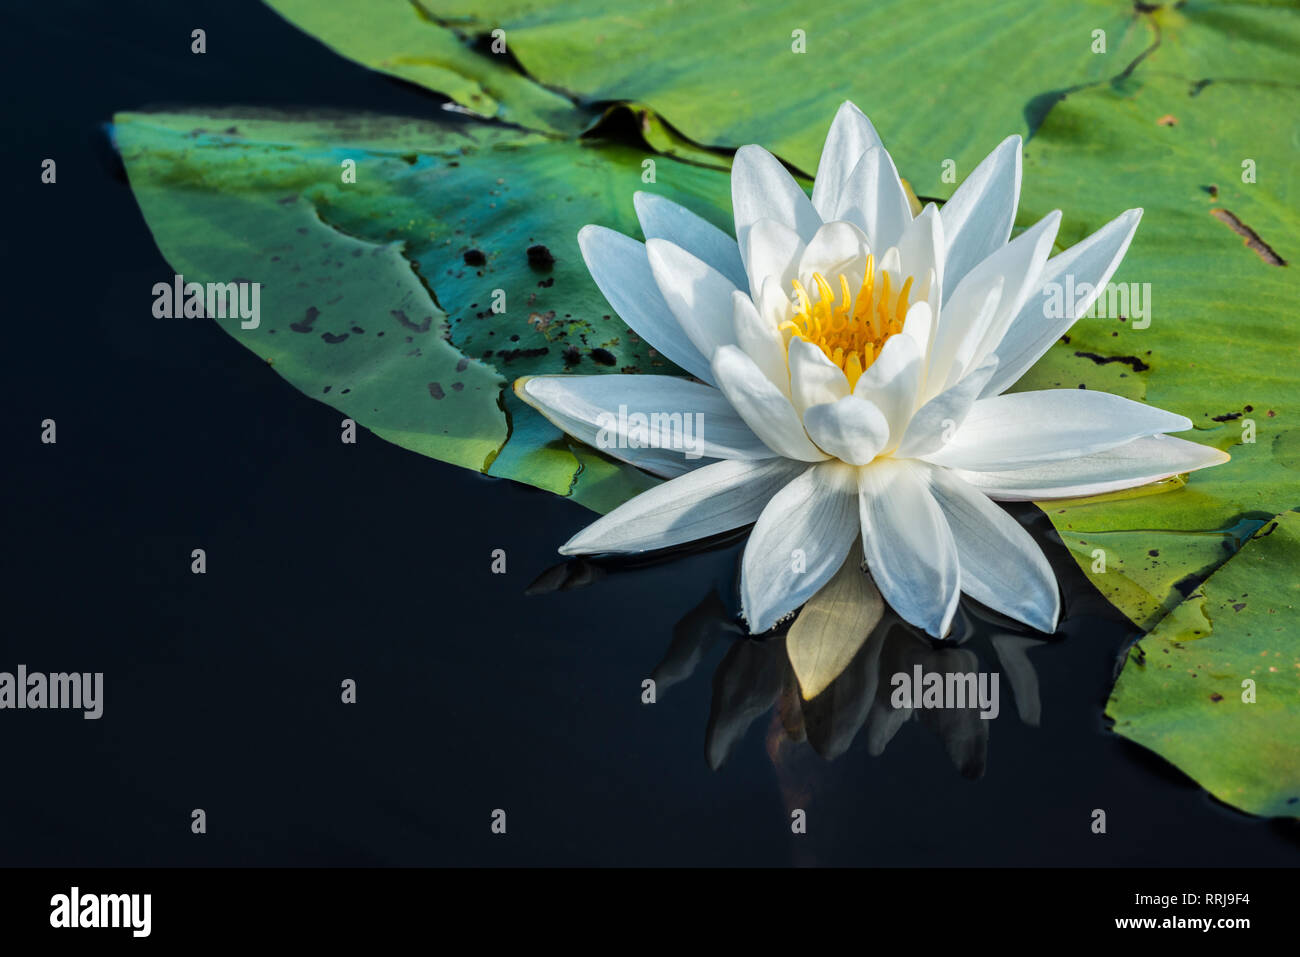 botany, Fragrant White Water Lily (Nymphaea odorata) in wetland on Horseshoe Lake in Muskoka, Additional-Rights-Clearance-Info-Not-Available Stock Photo